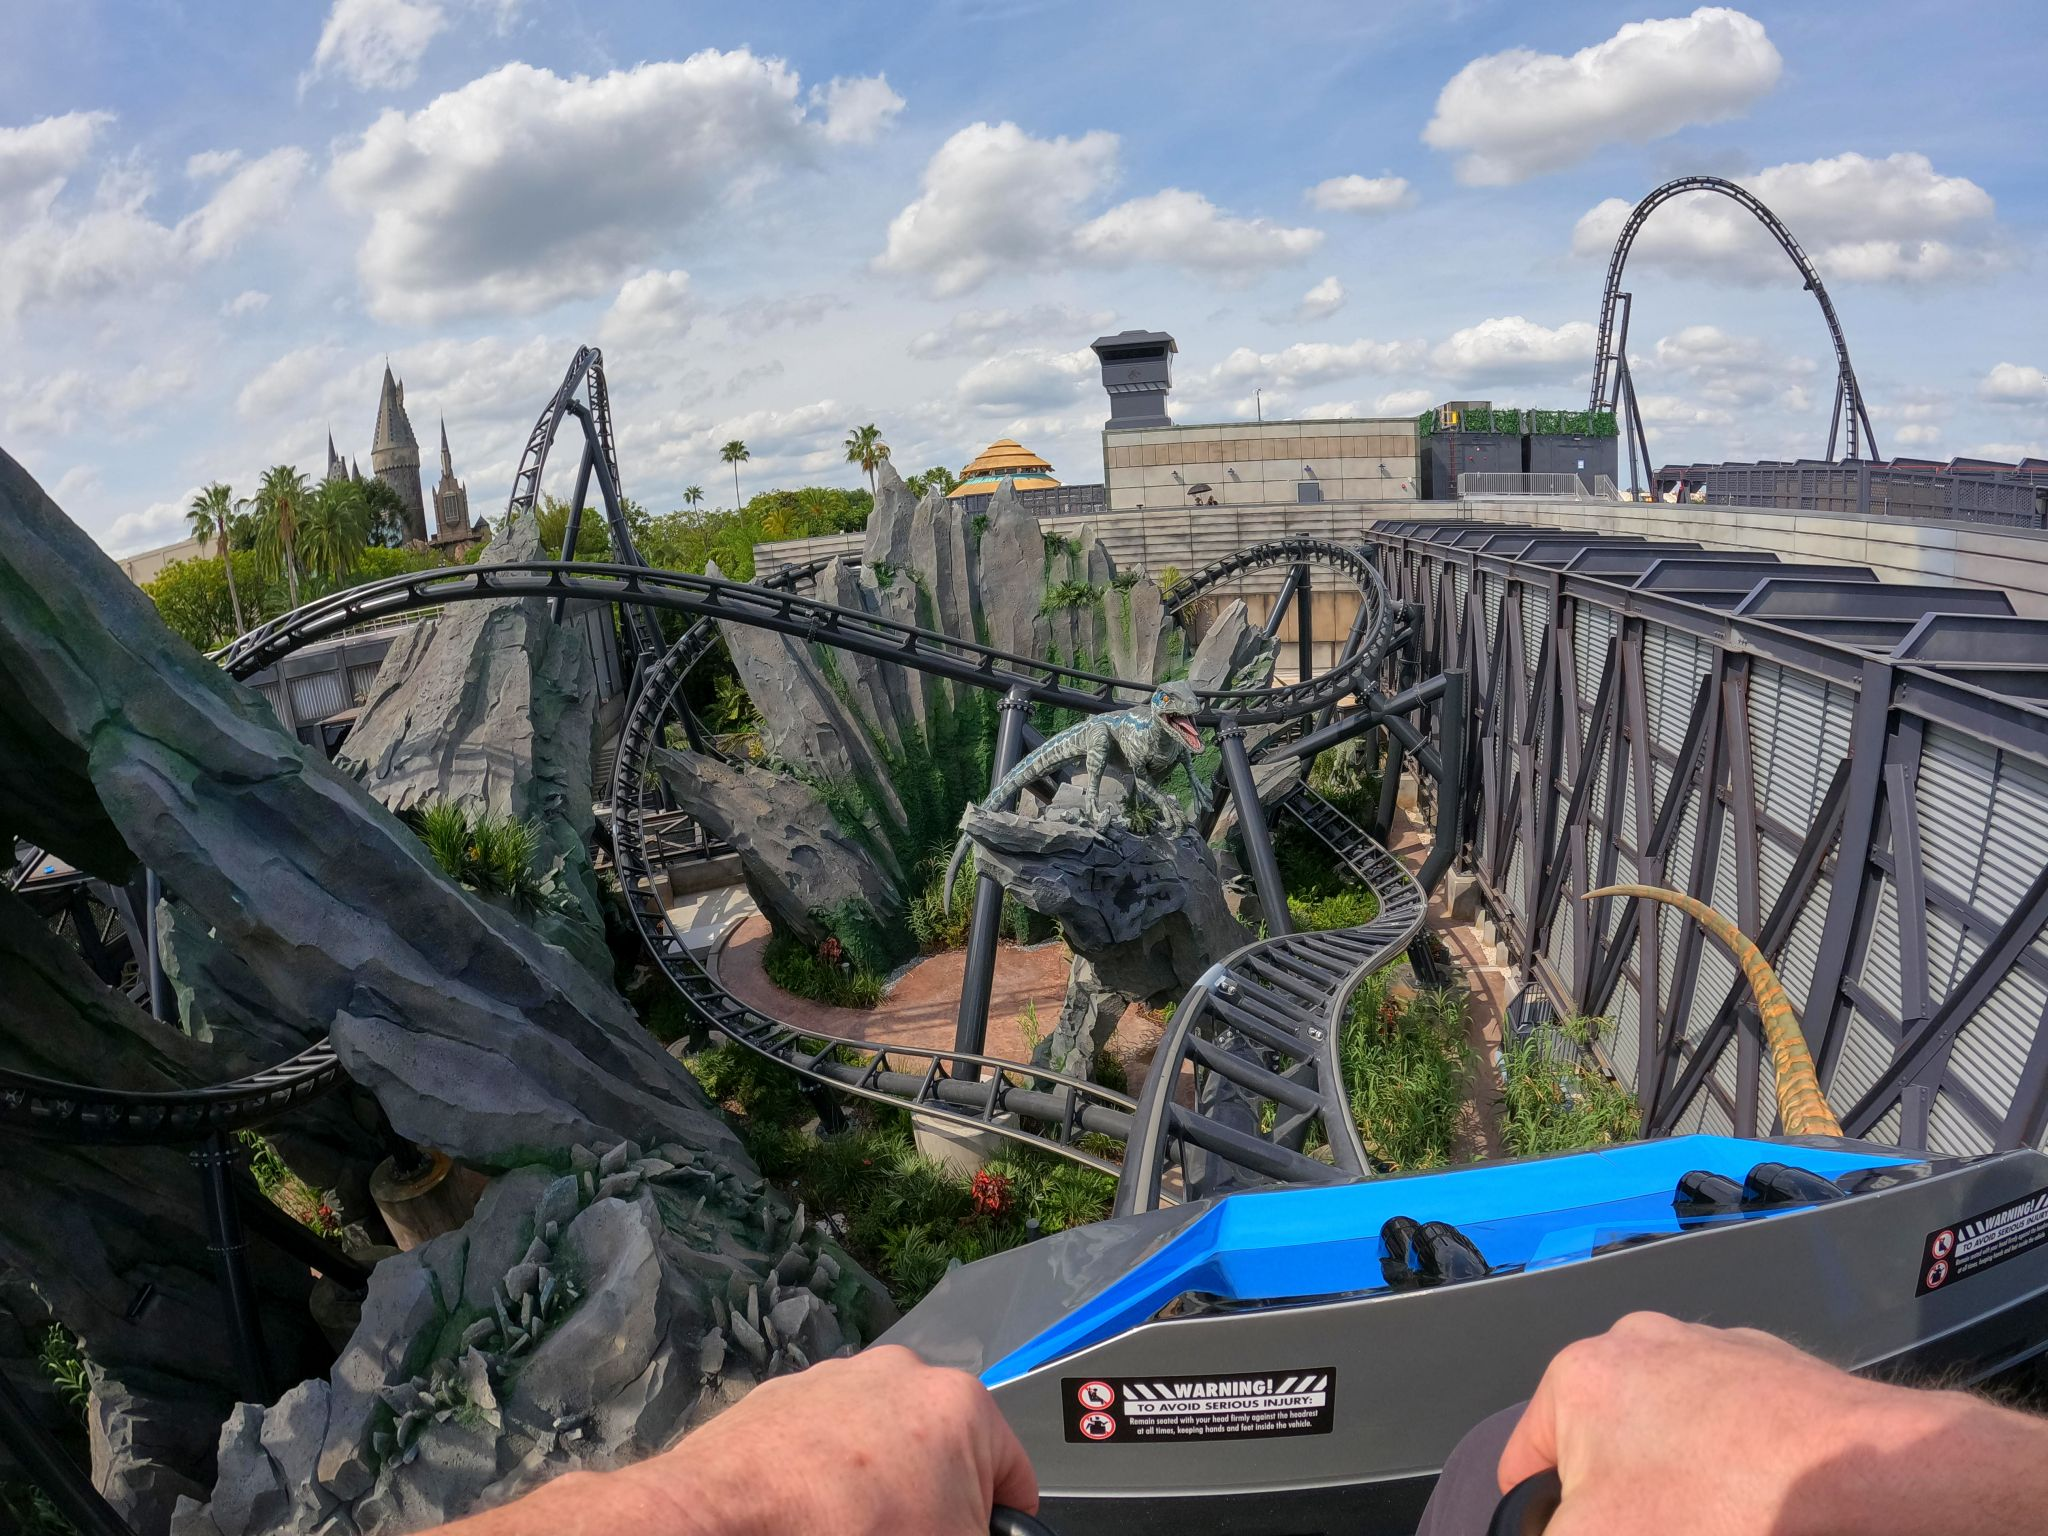 I rode America's scariest roller coaster. Here's what it was like.